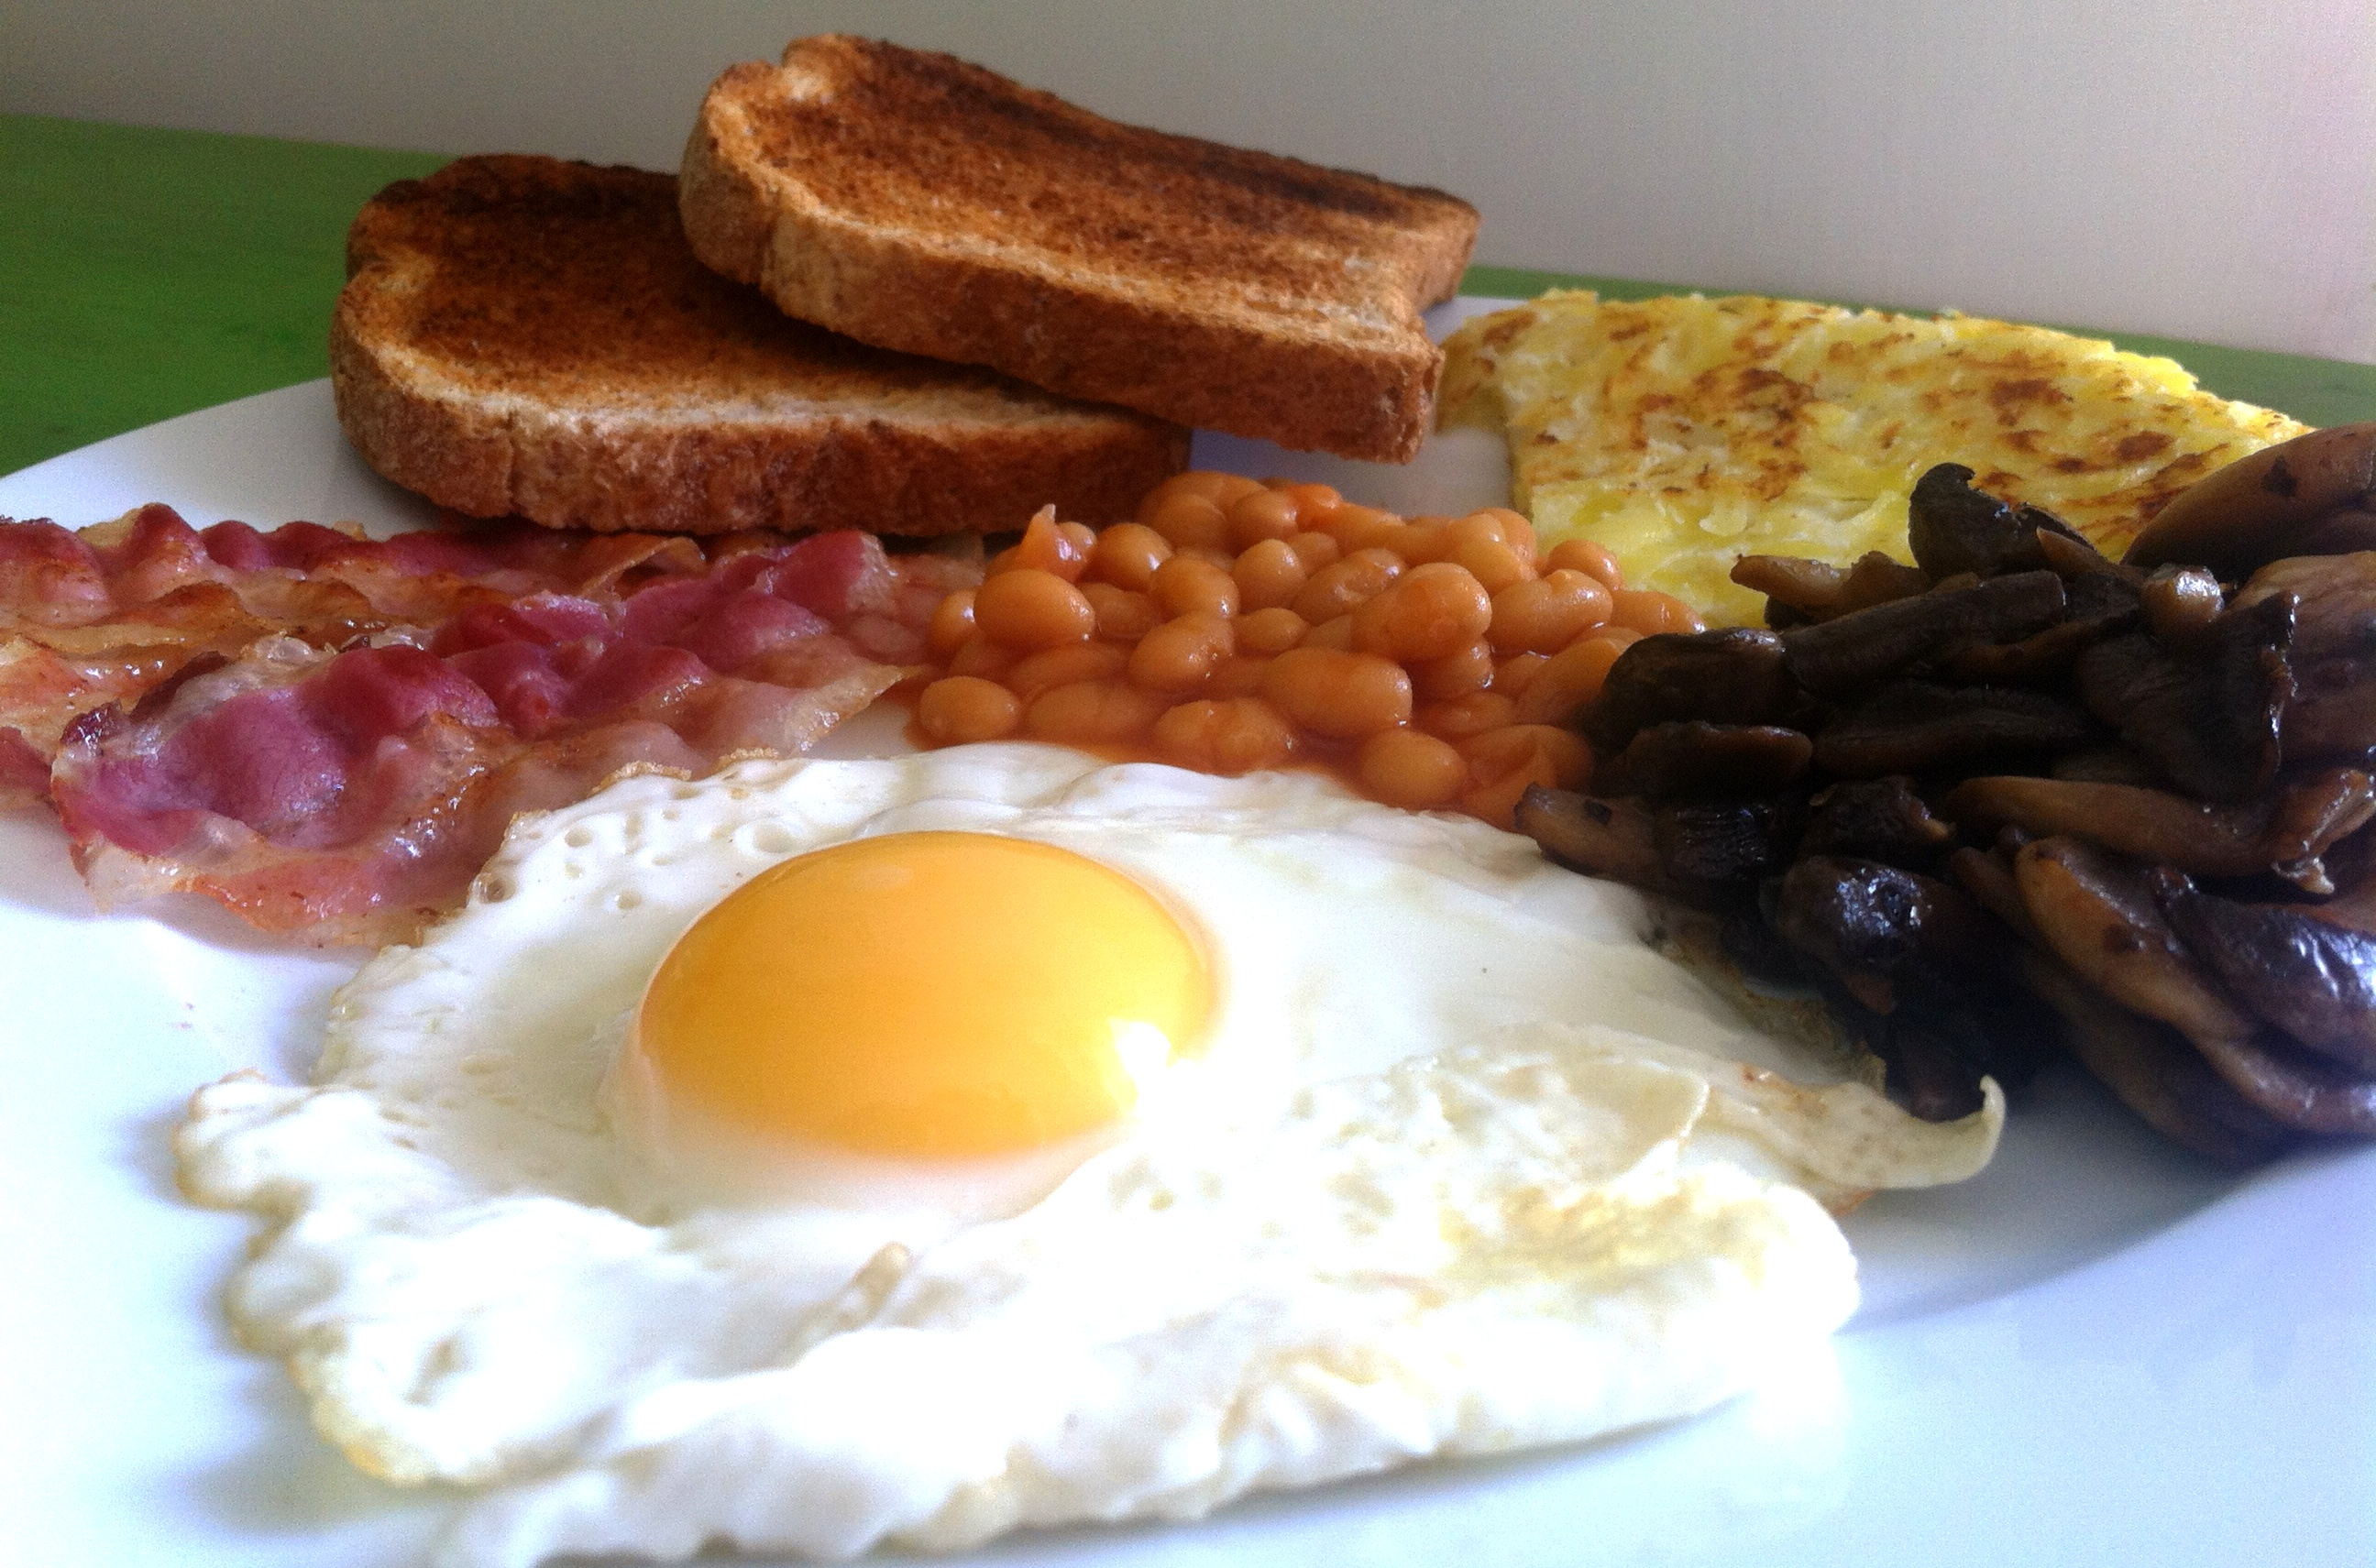 full english breakfast is a meal recipes denn full english breakfast ...